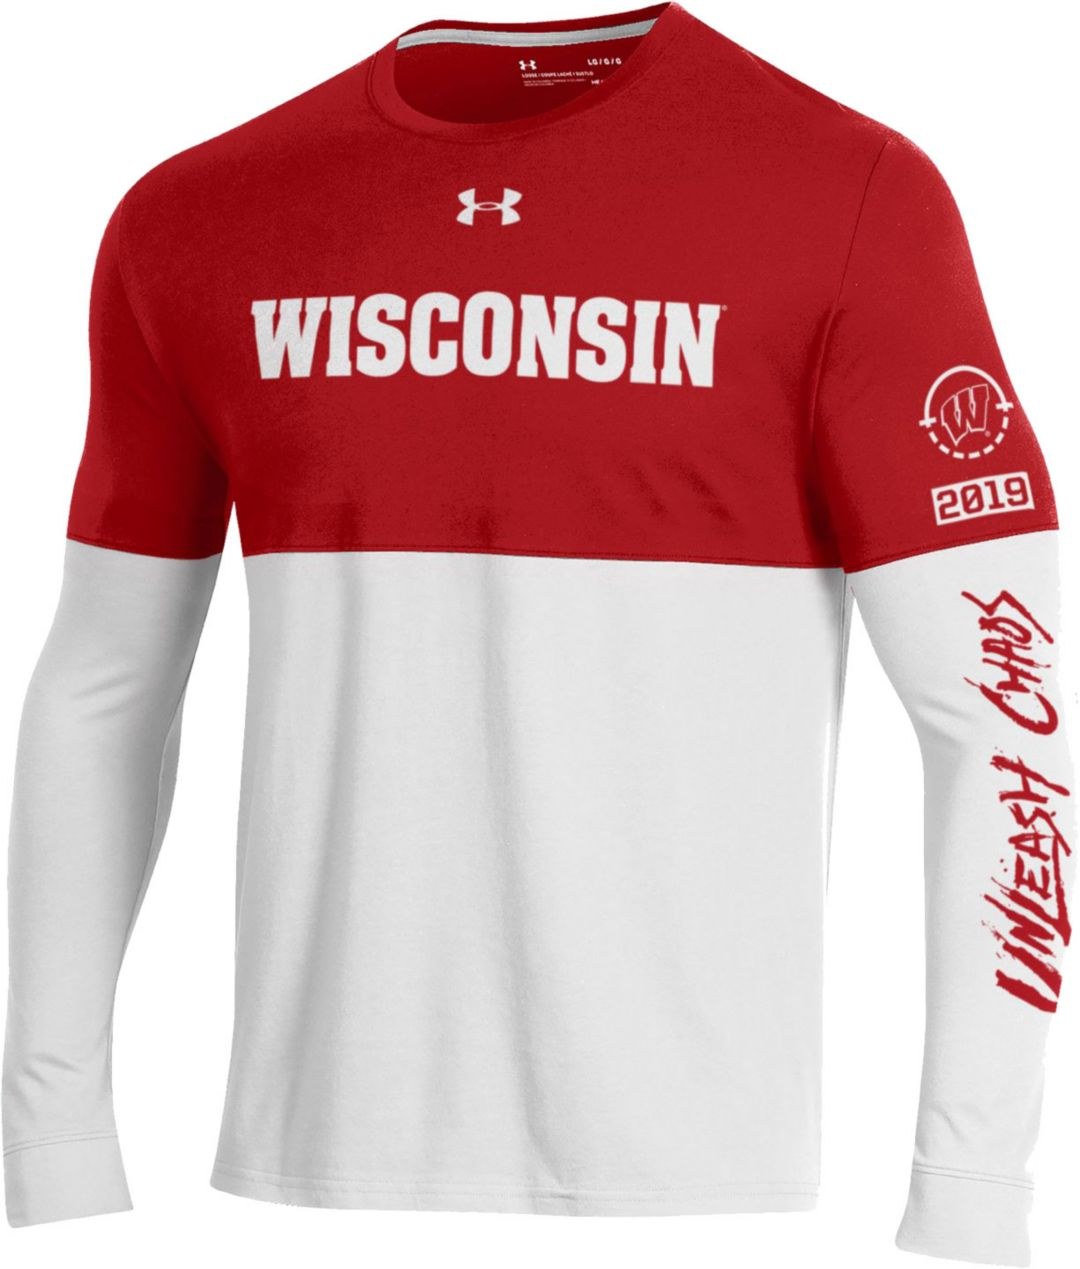 91e268fa Under Armour Men's Wisconsin Badgers Red/White 'Unleash Chaos' Bench Long  Sleeve Basketball T-Shirt. noImageFound. 1